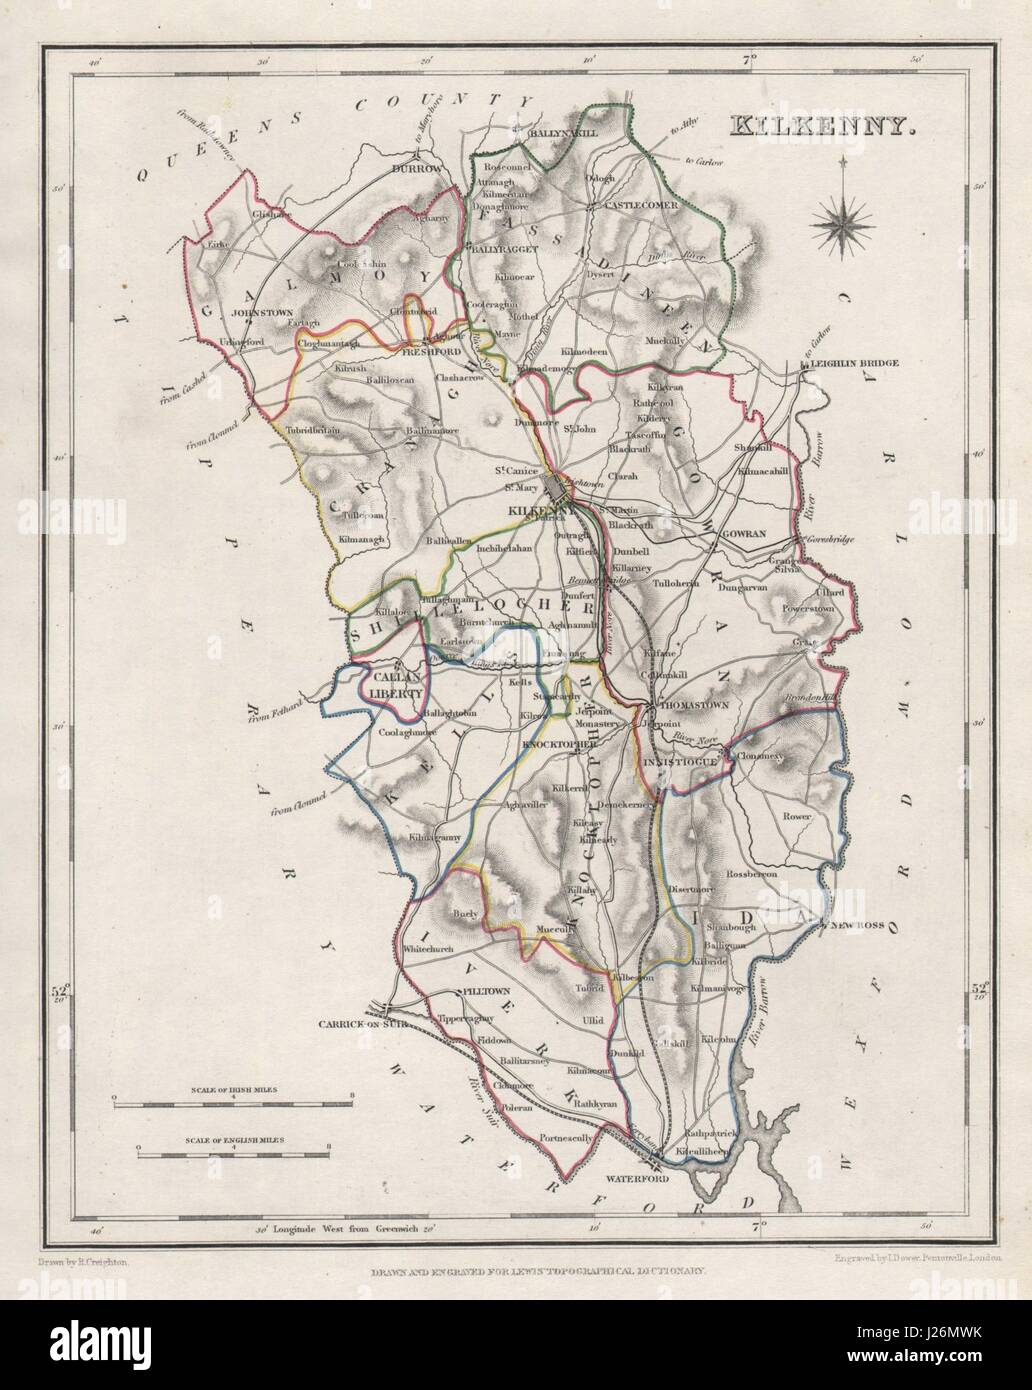 Map Kilkenny Free Wallpaper For MAPS Full Maps - Antique map box